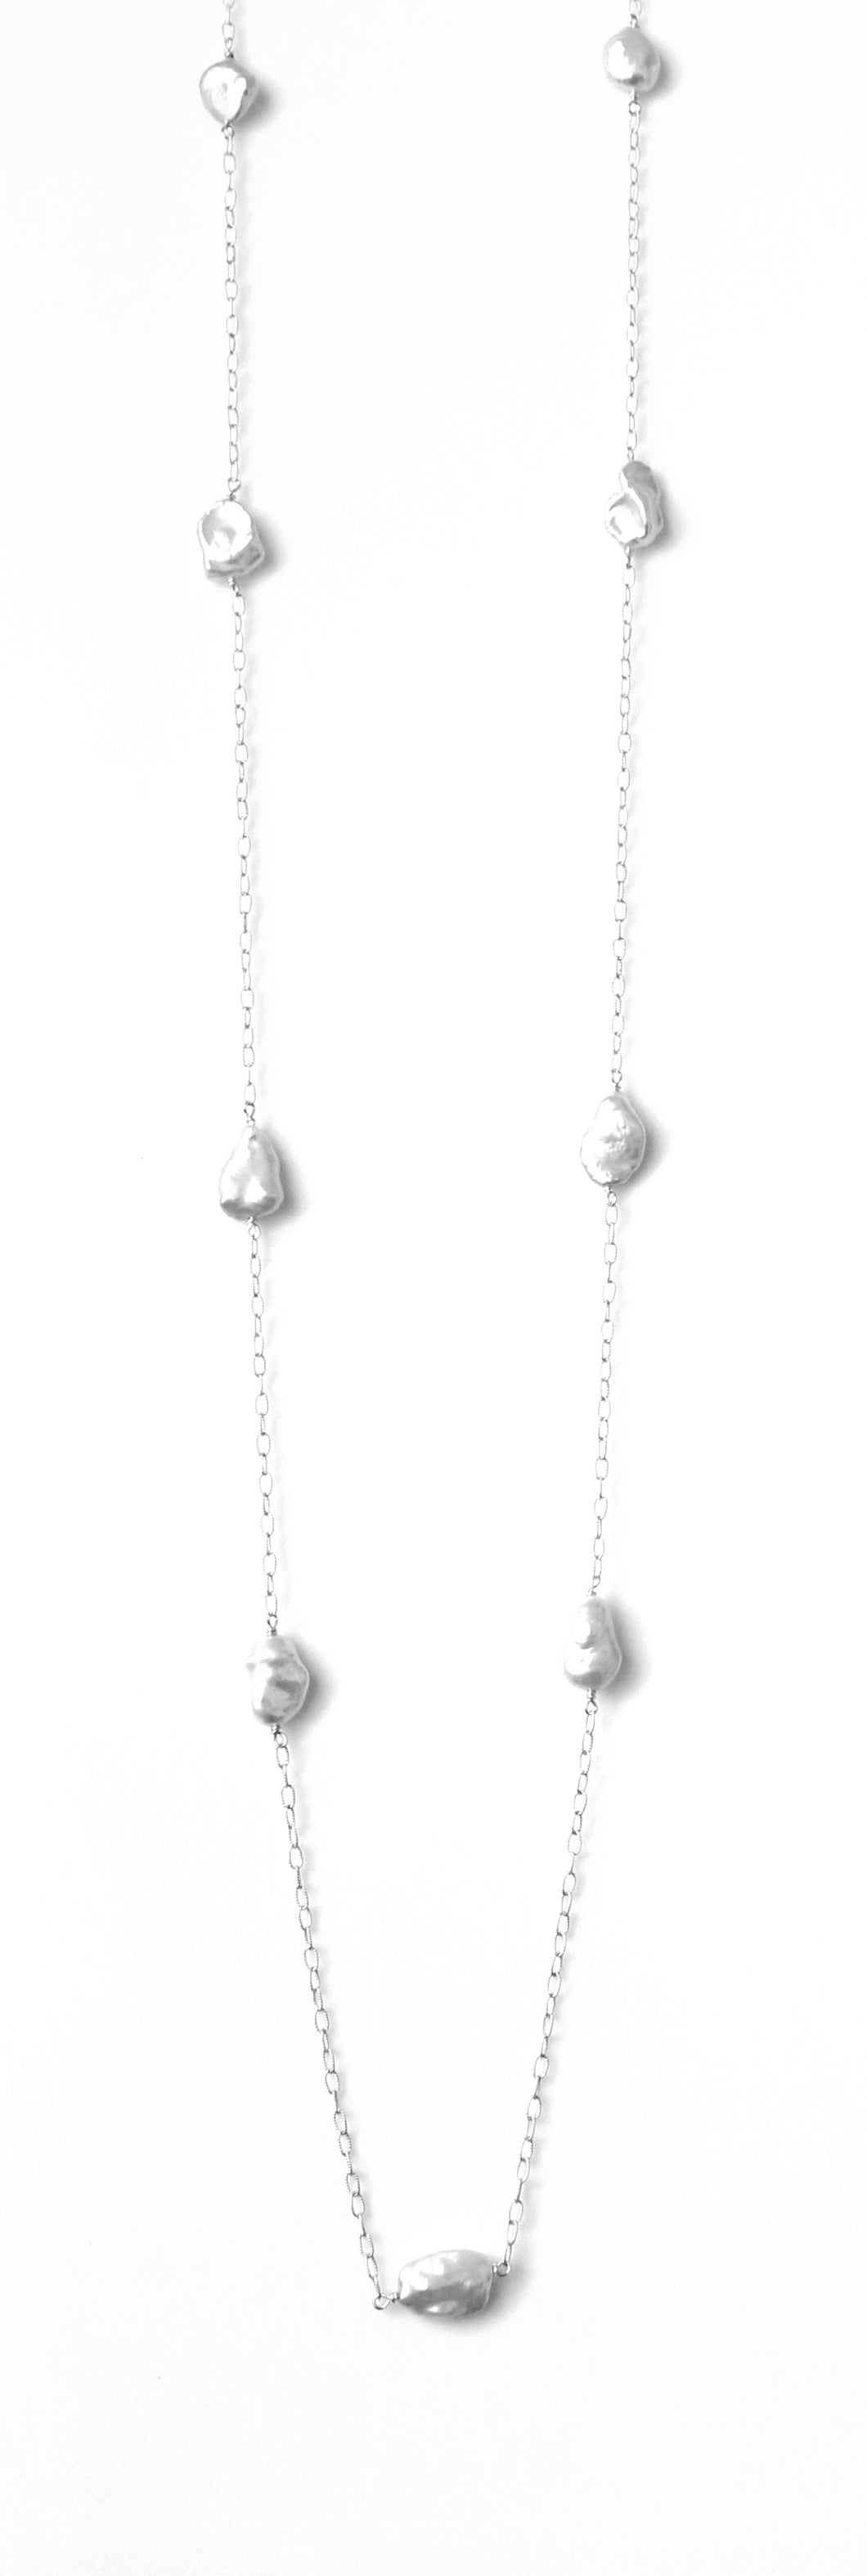 Sterling Silver Chain Necklace with Baroque Pearls